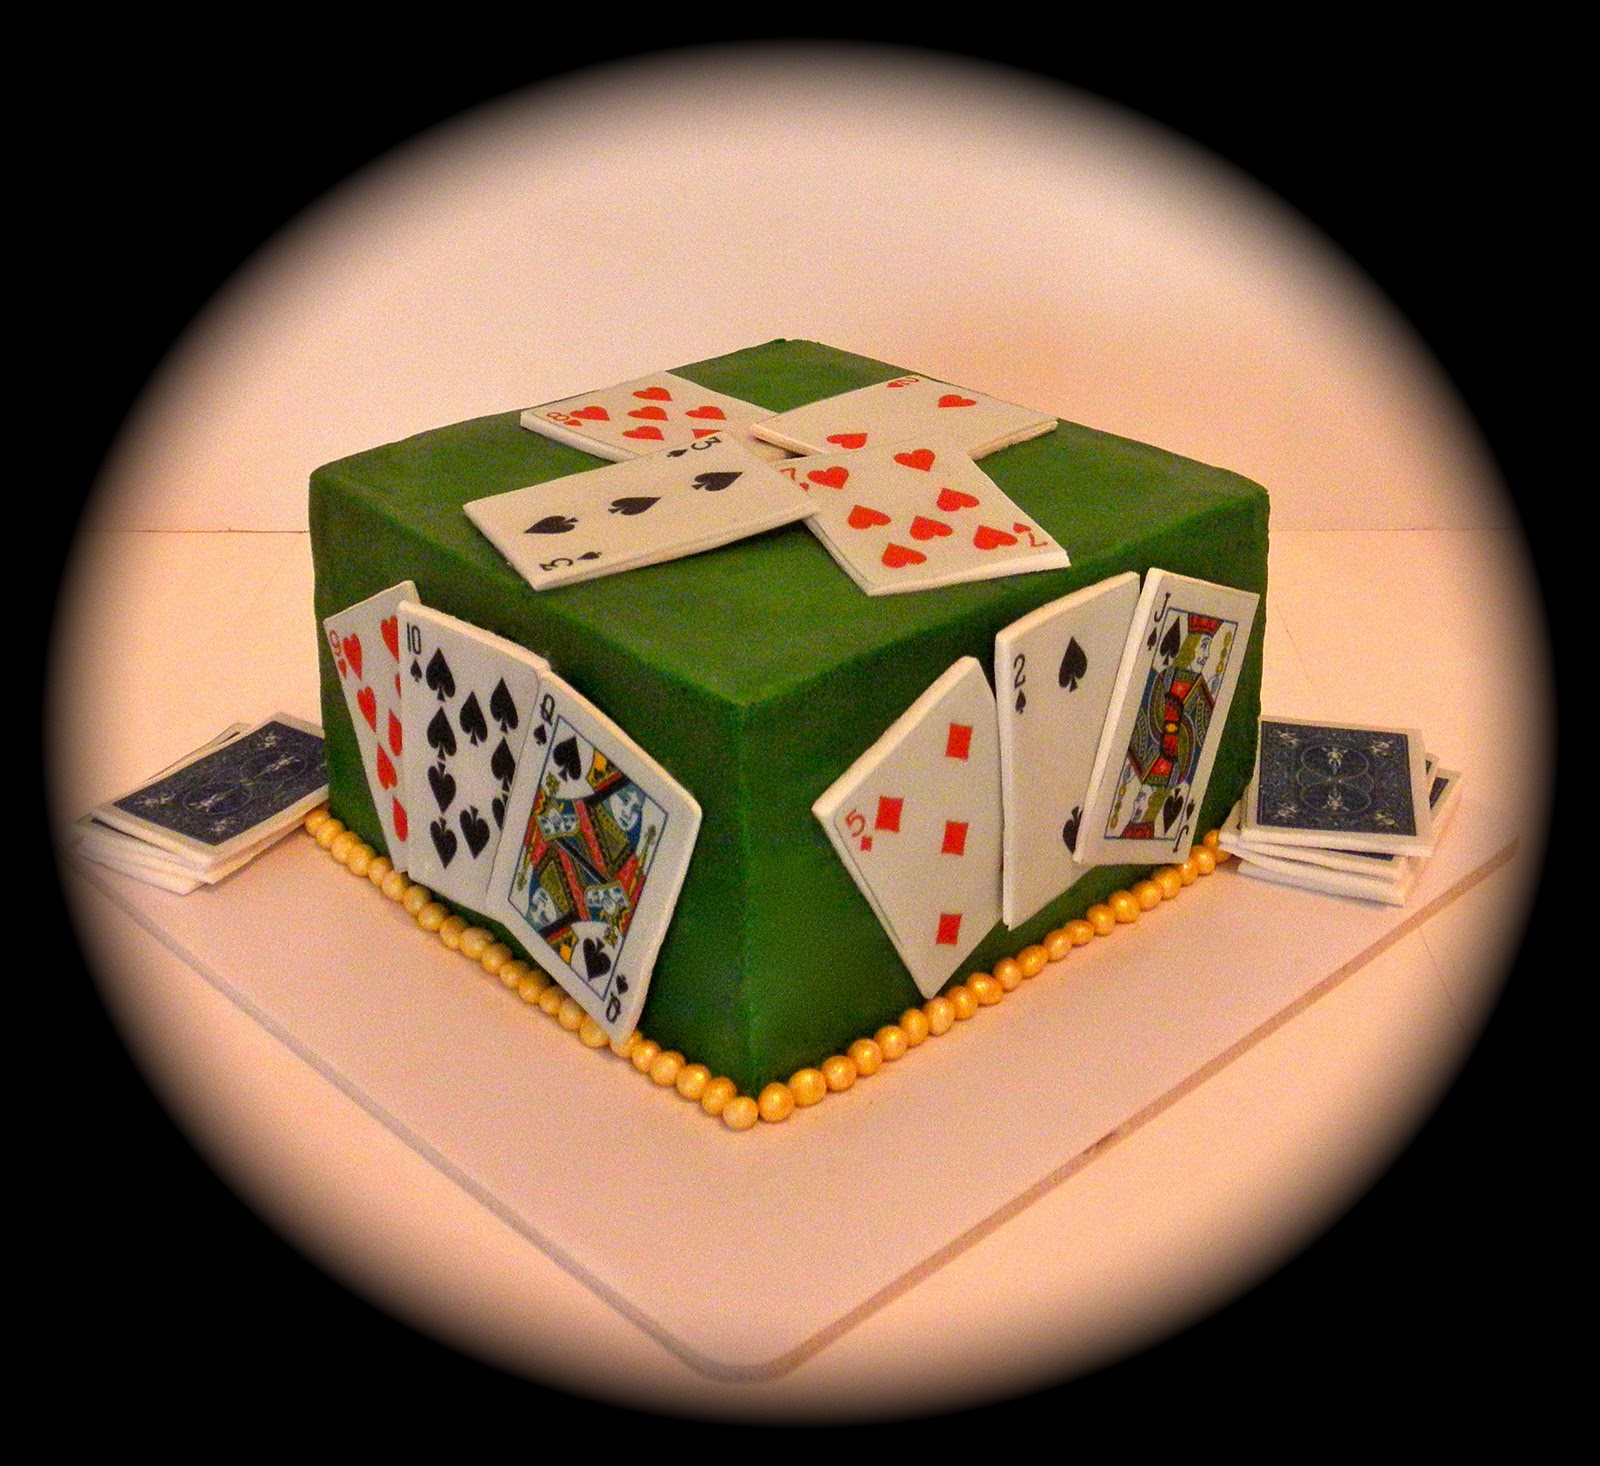 Sweet K Cake Design : Sweet T s Cake Design: Card Game of Spades Special ...